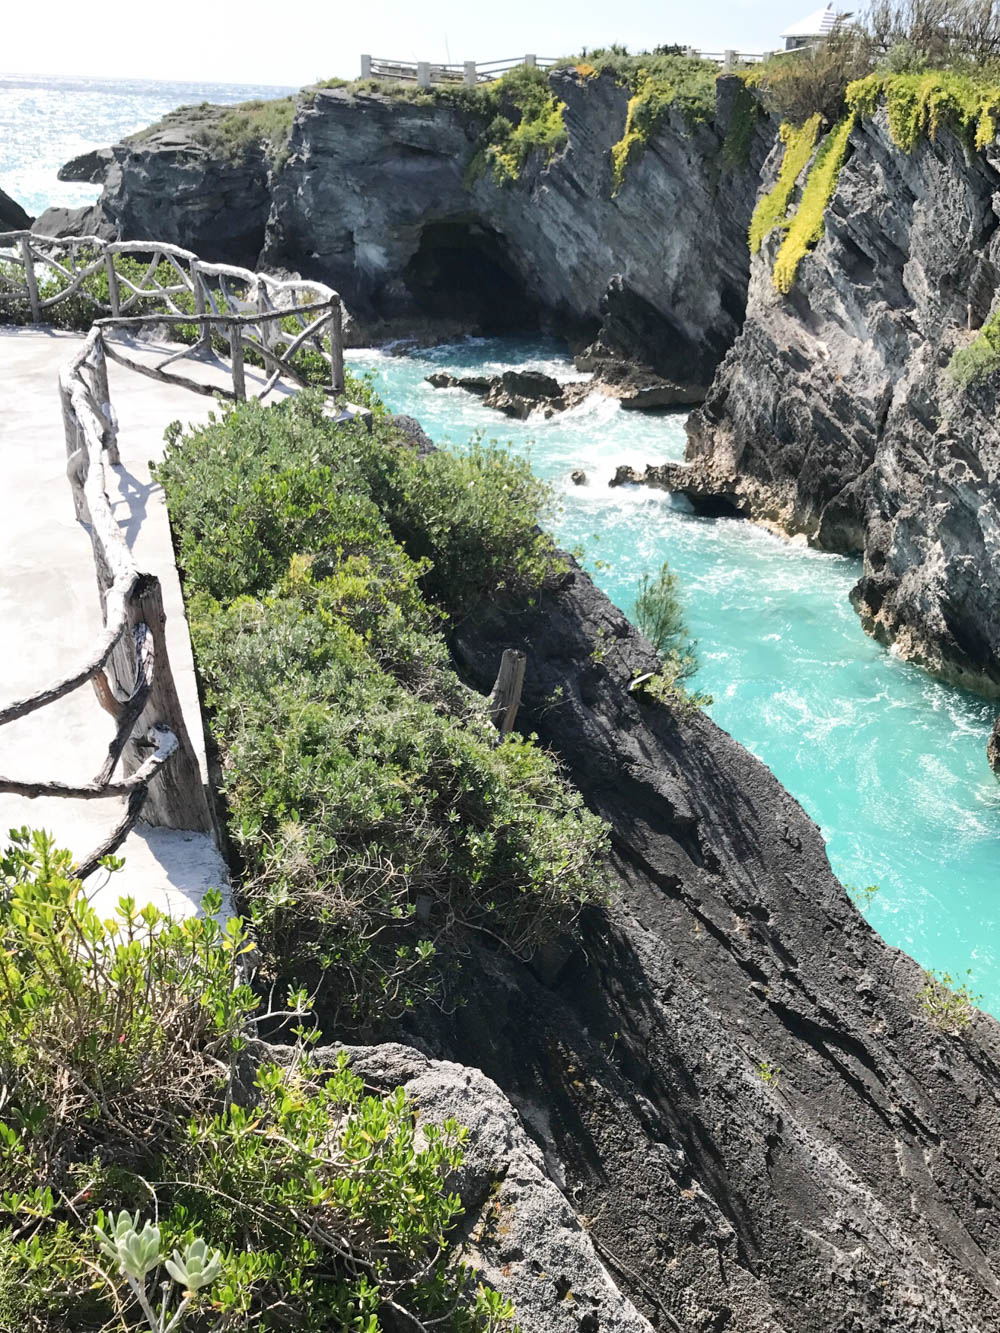 Bermuda Travel Guide | Bermuda travel tips | Bermuda things to do | Babymoon Ideas | Babymoon outfits | Babymoon Destinations | Bermuda Packing List